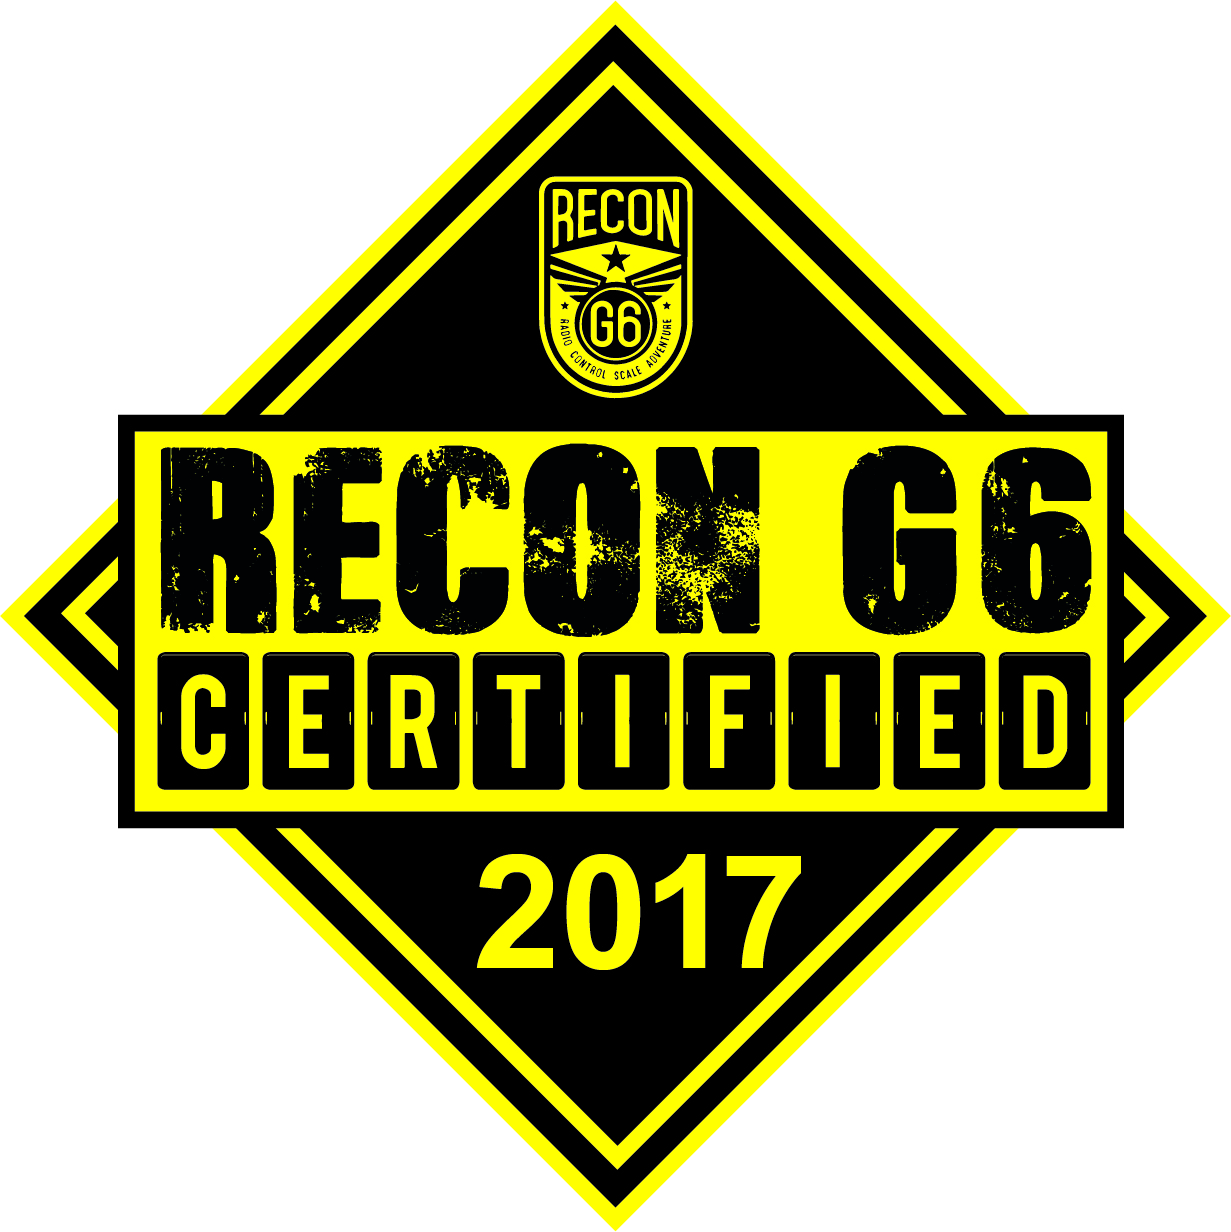 https://www.rc4wd.com/ProductImages/Logos/ReconG6Certified2017.jpg